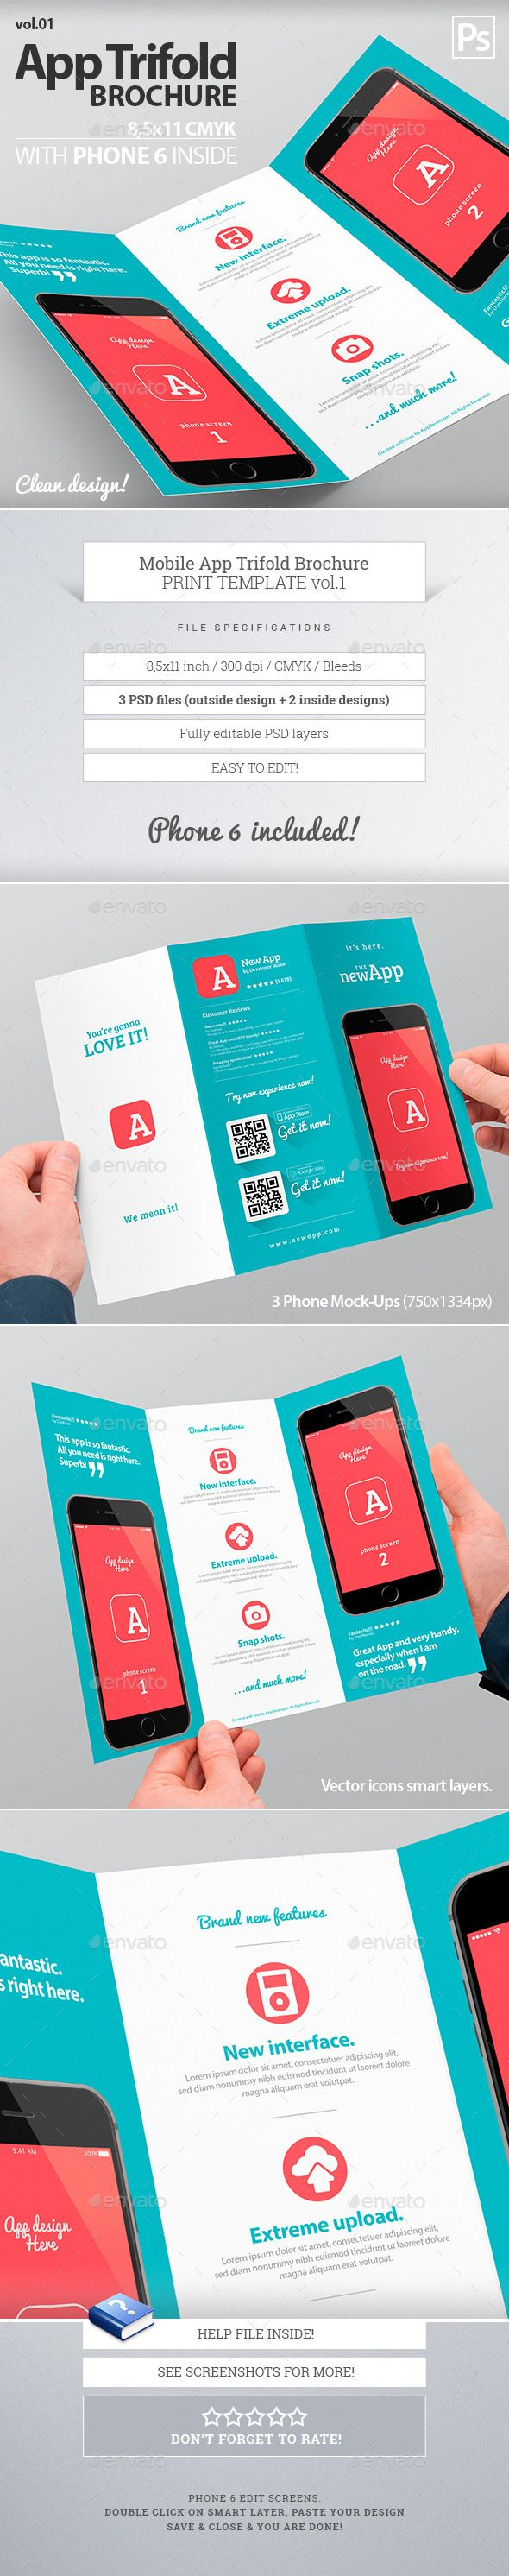 Excellent 1 Page Resume Format Free Download Big 100 Free Resume Builder And Download Square 100 Free Resume Builder Online 1099 Contract Template Youthful 15 Year Old Resume Soft2 Circle Template Mobile App Trifold Brochure Vol.1 | Print..